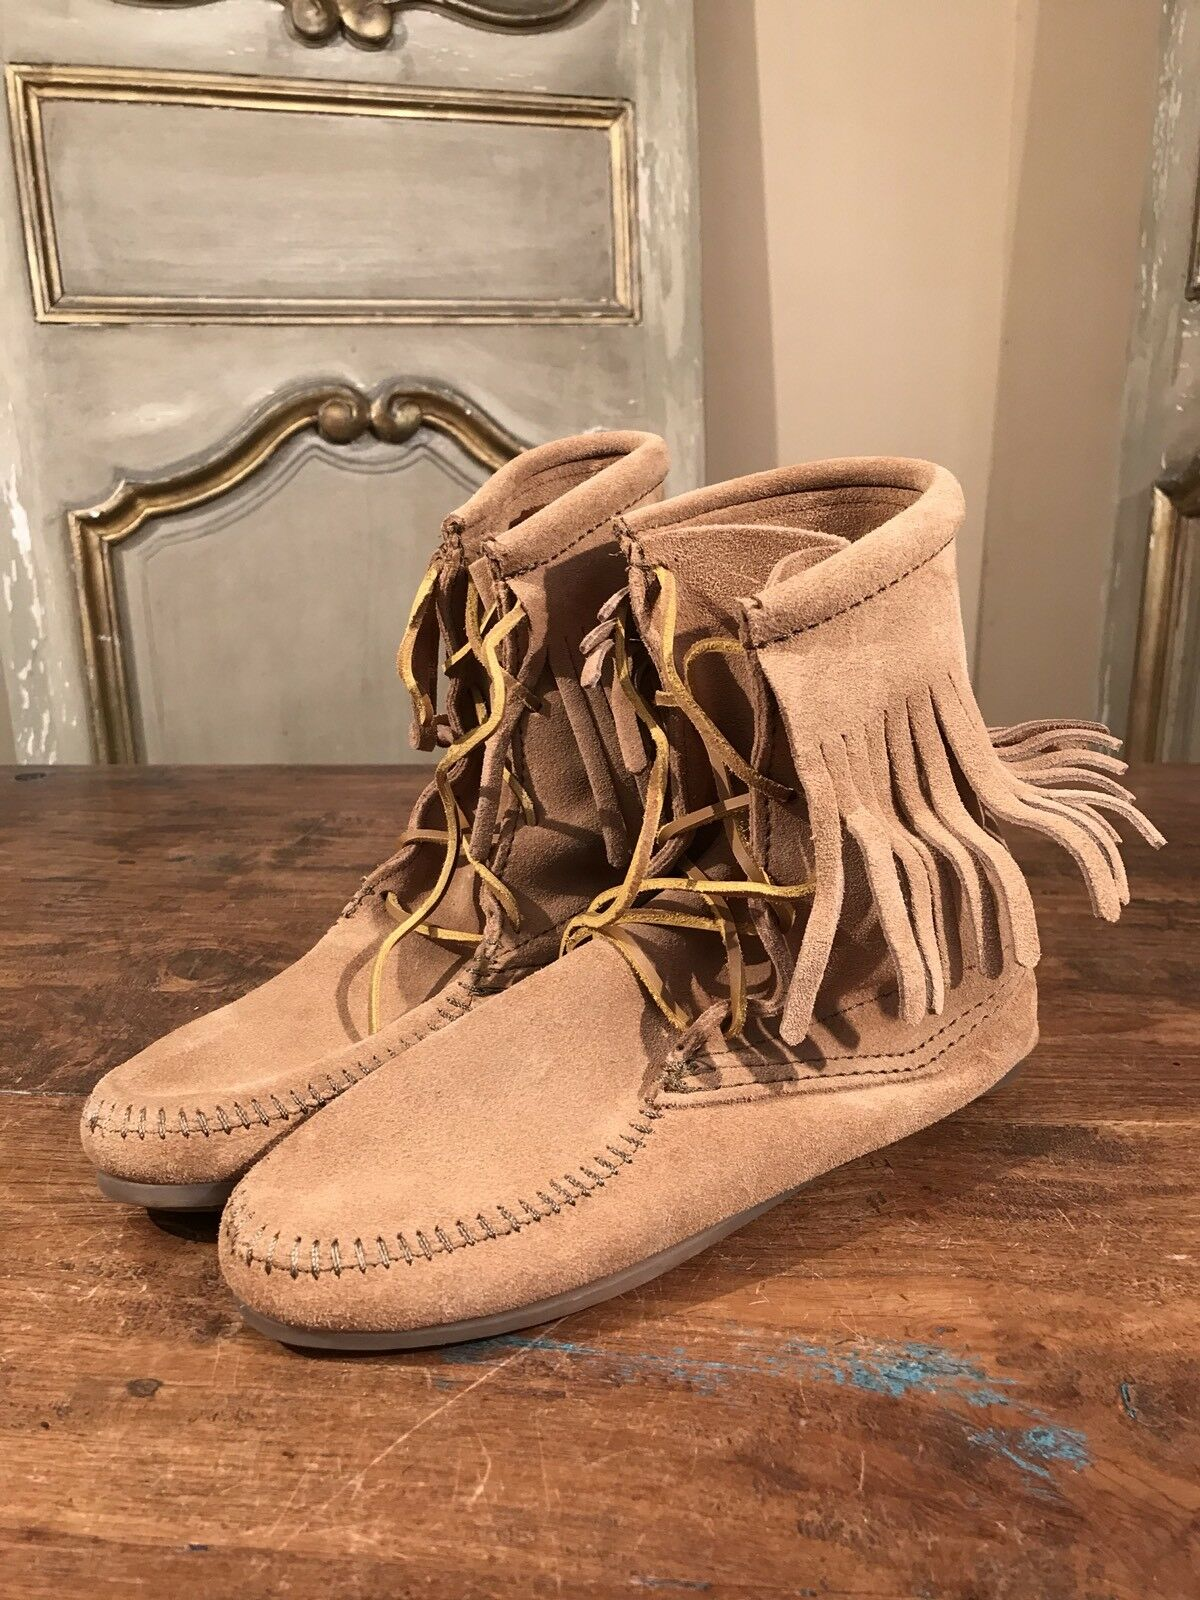 New Minnetonka Ankle Womens Boots Booties Size 6 Native Fringe